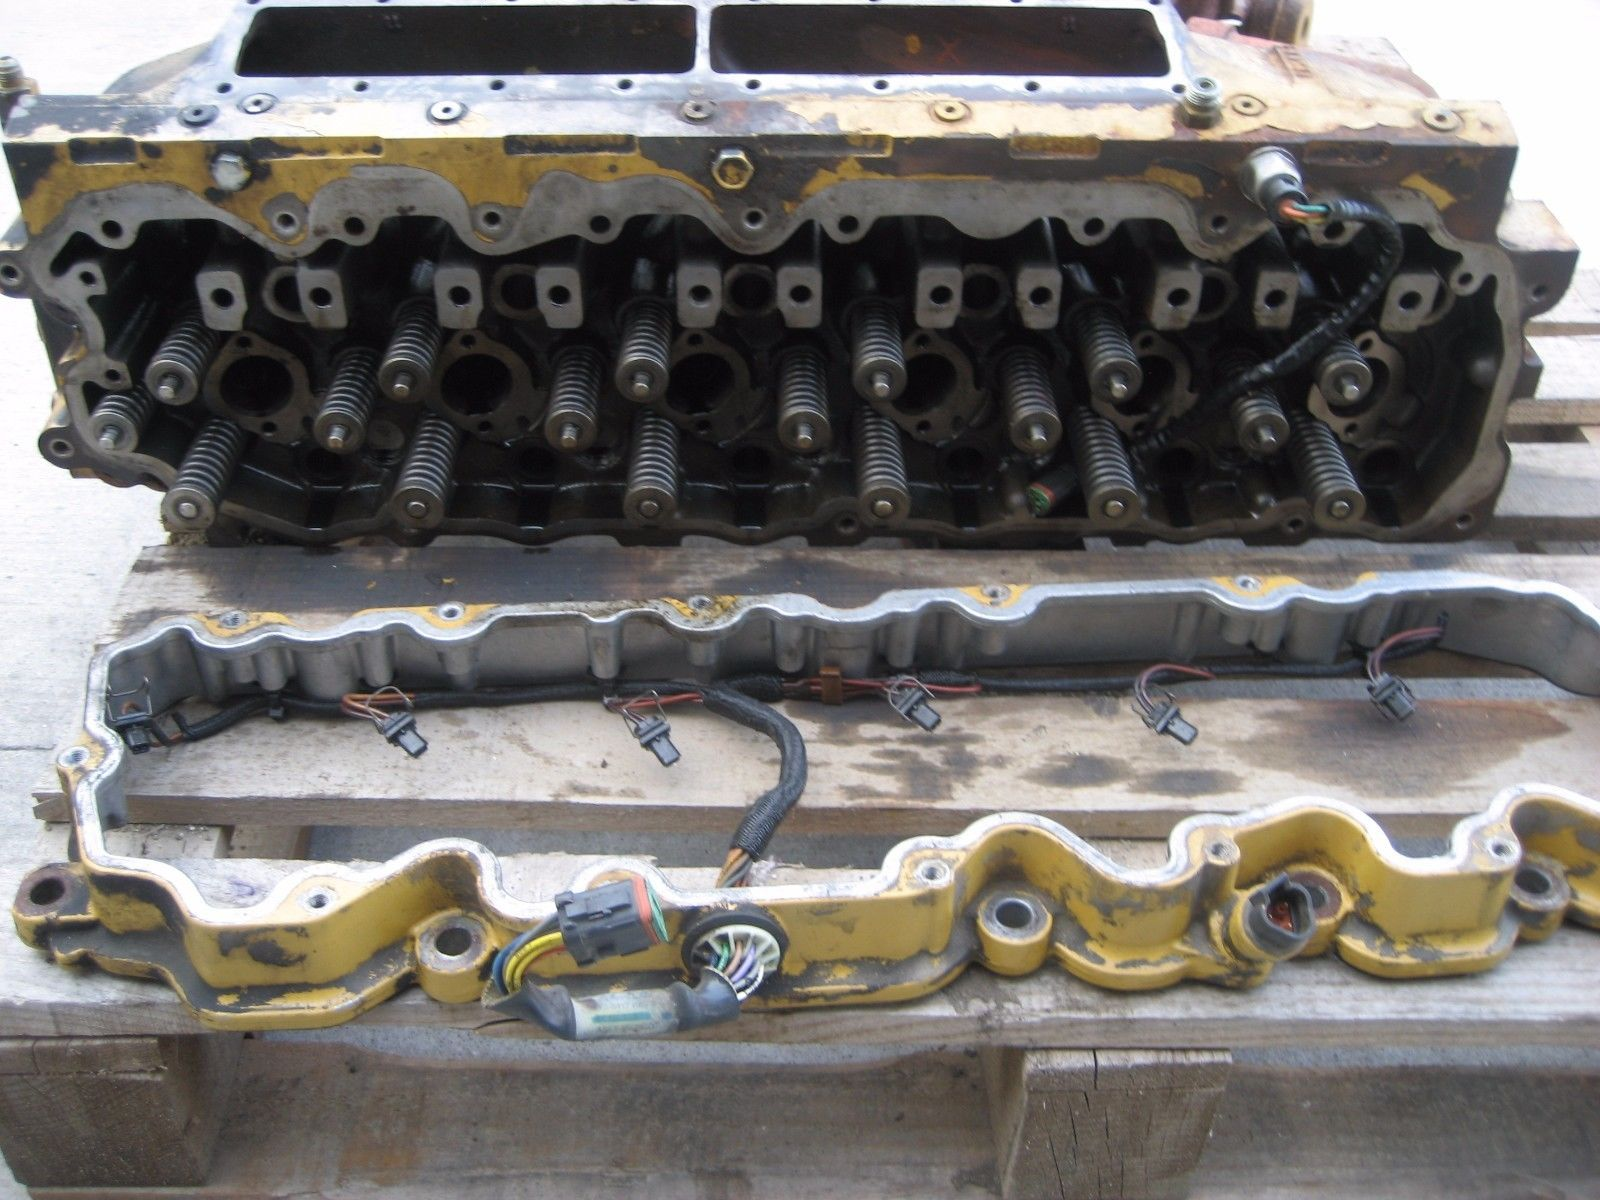 hight resolution of cat c7 engine cylinder head push rods rocker arm assembly injector harness ebay link